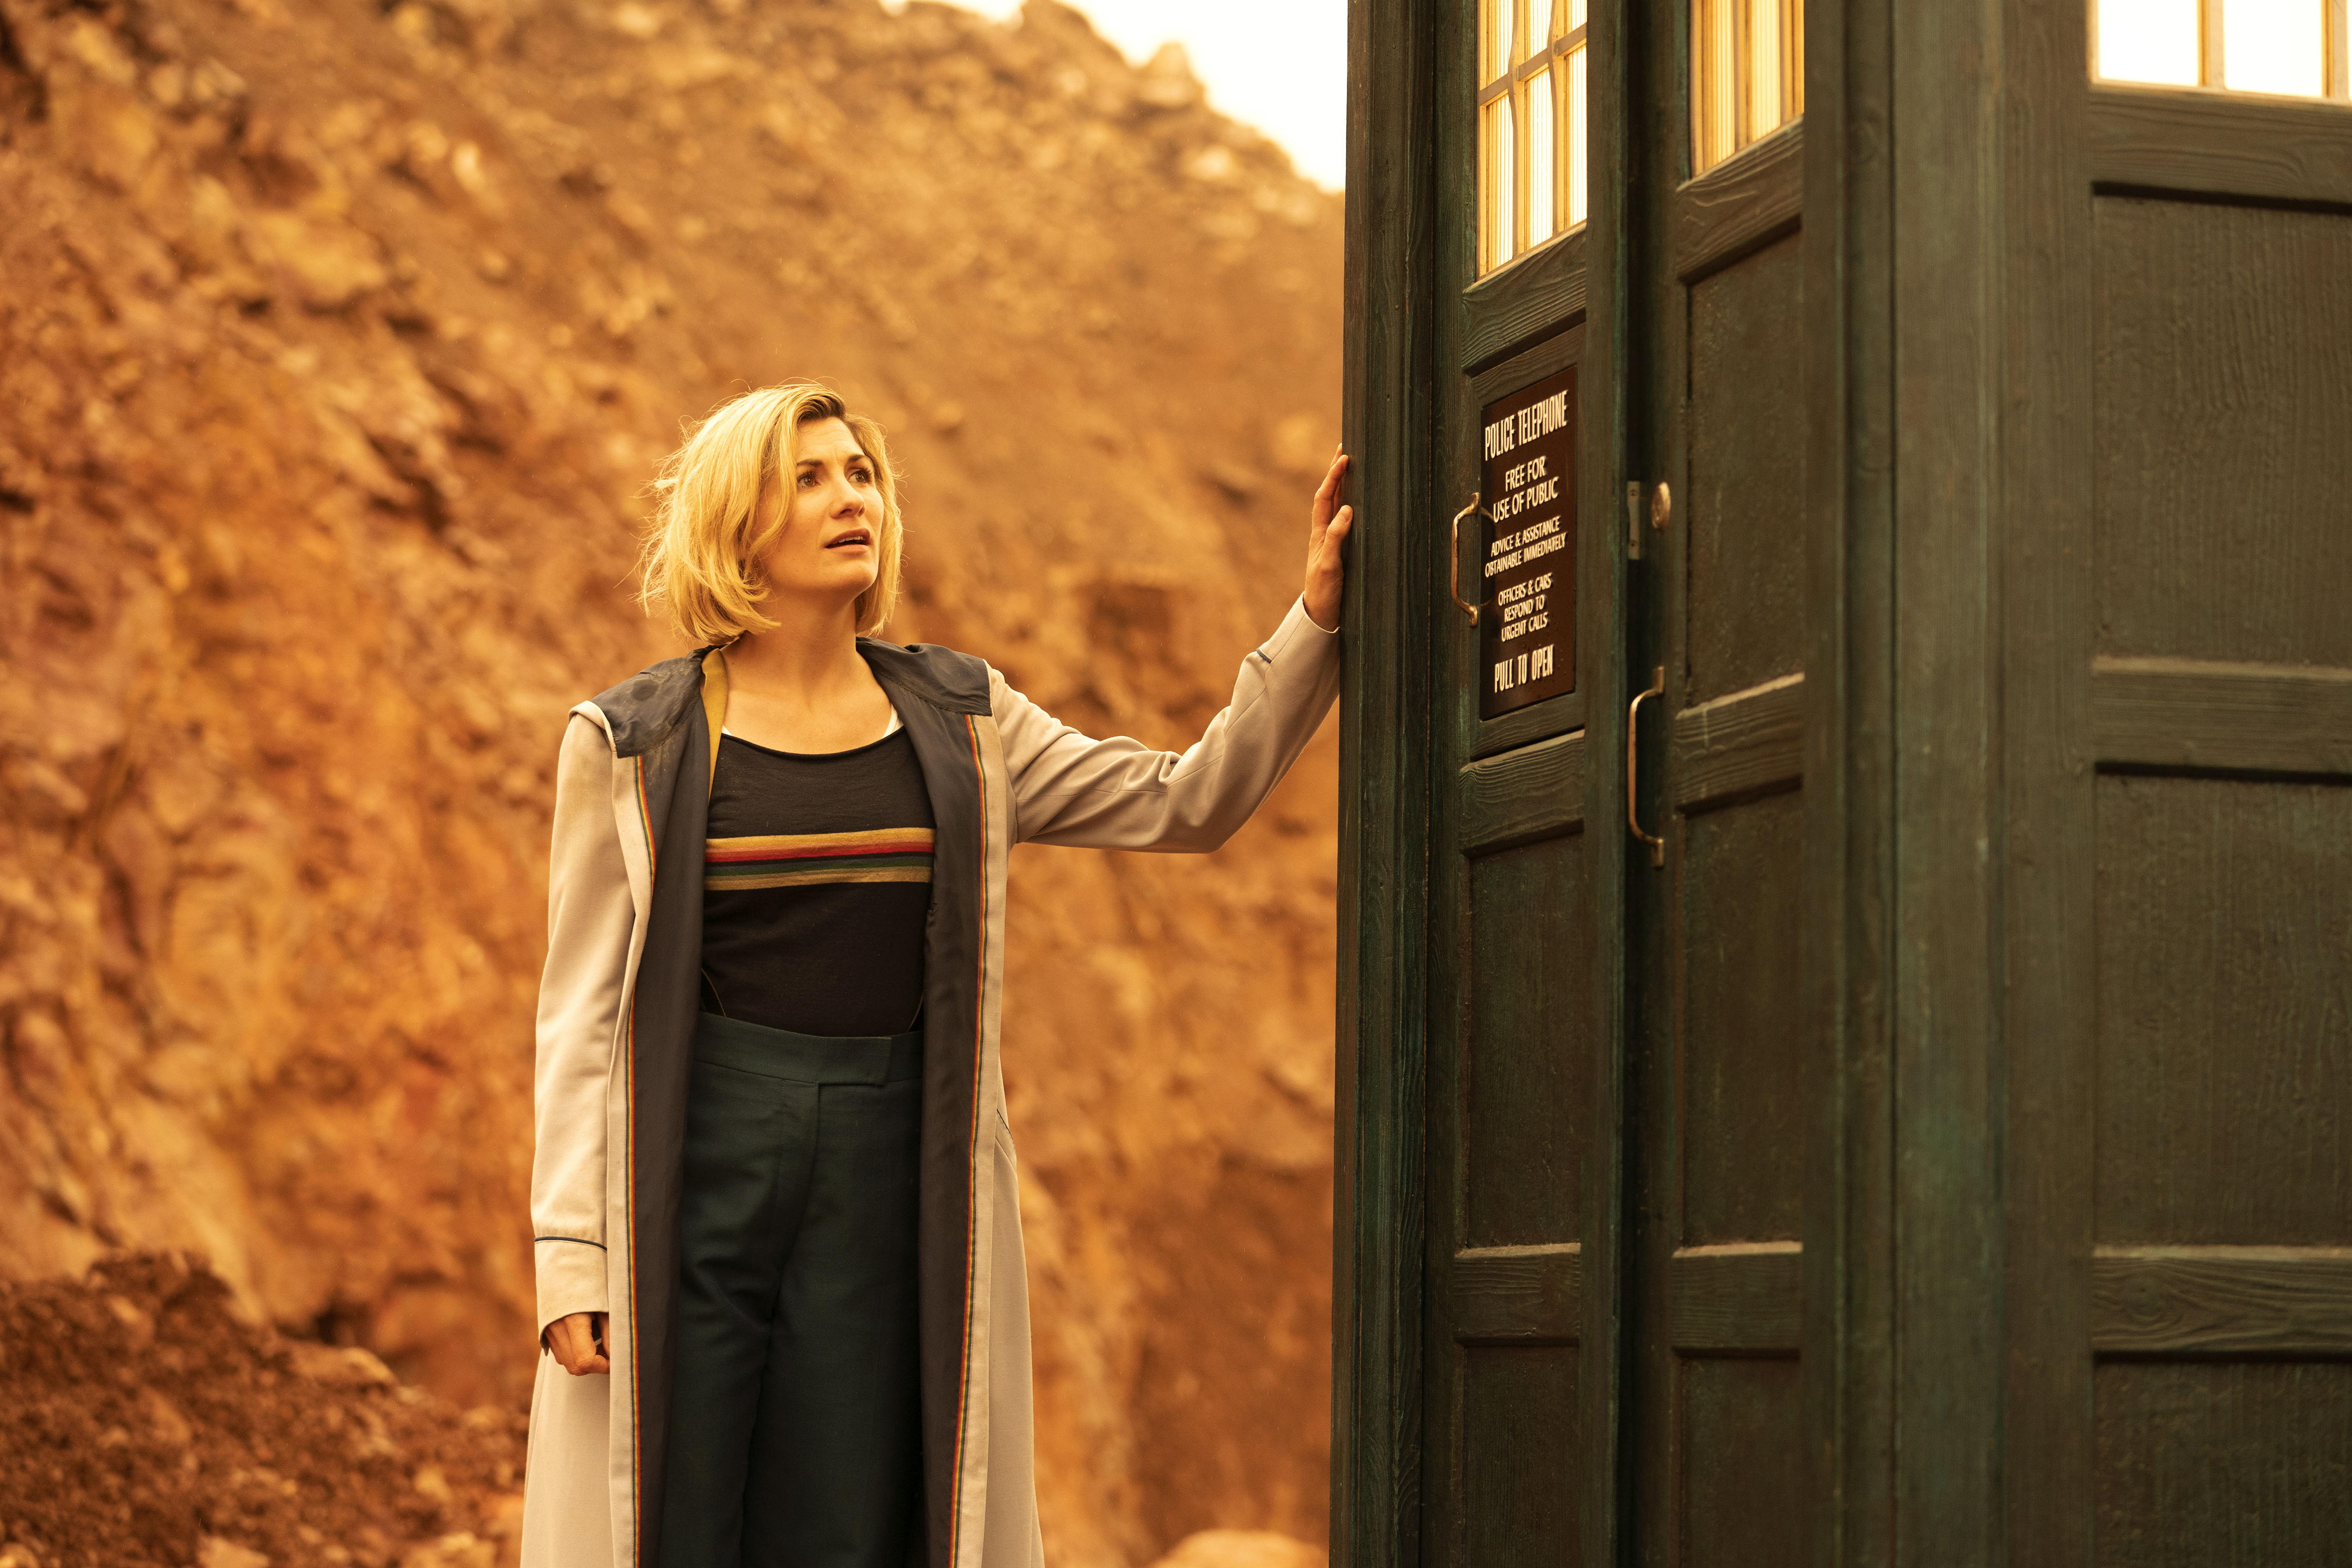 Doctor Who - Previous Scenes